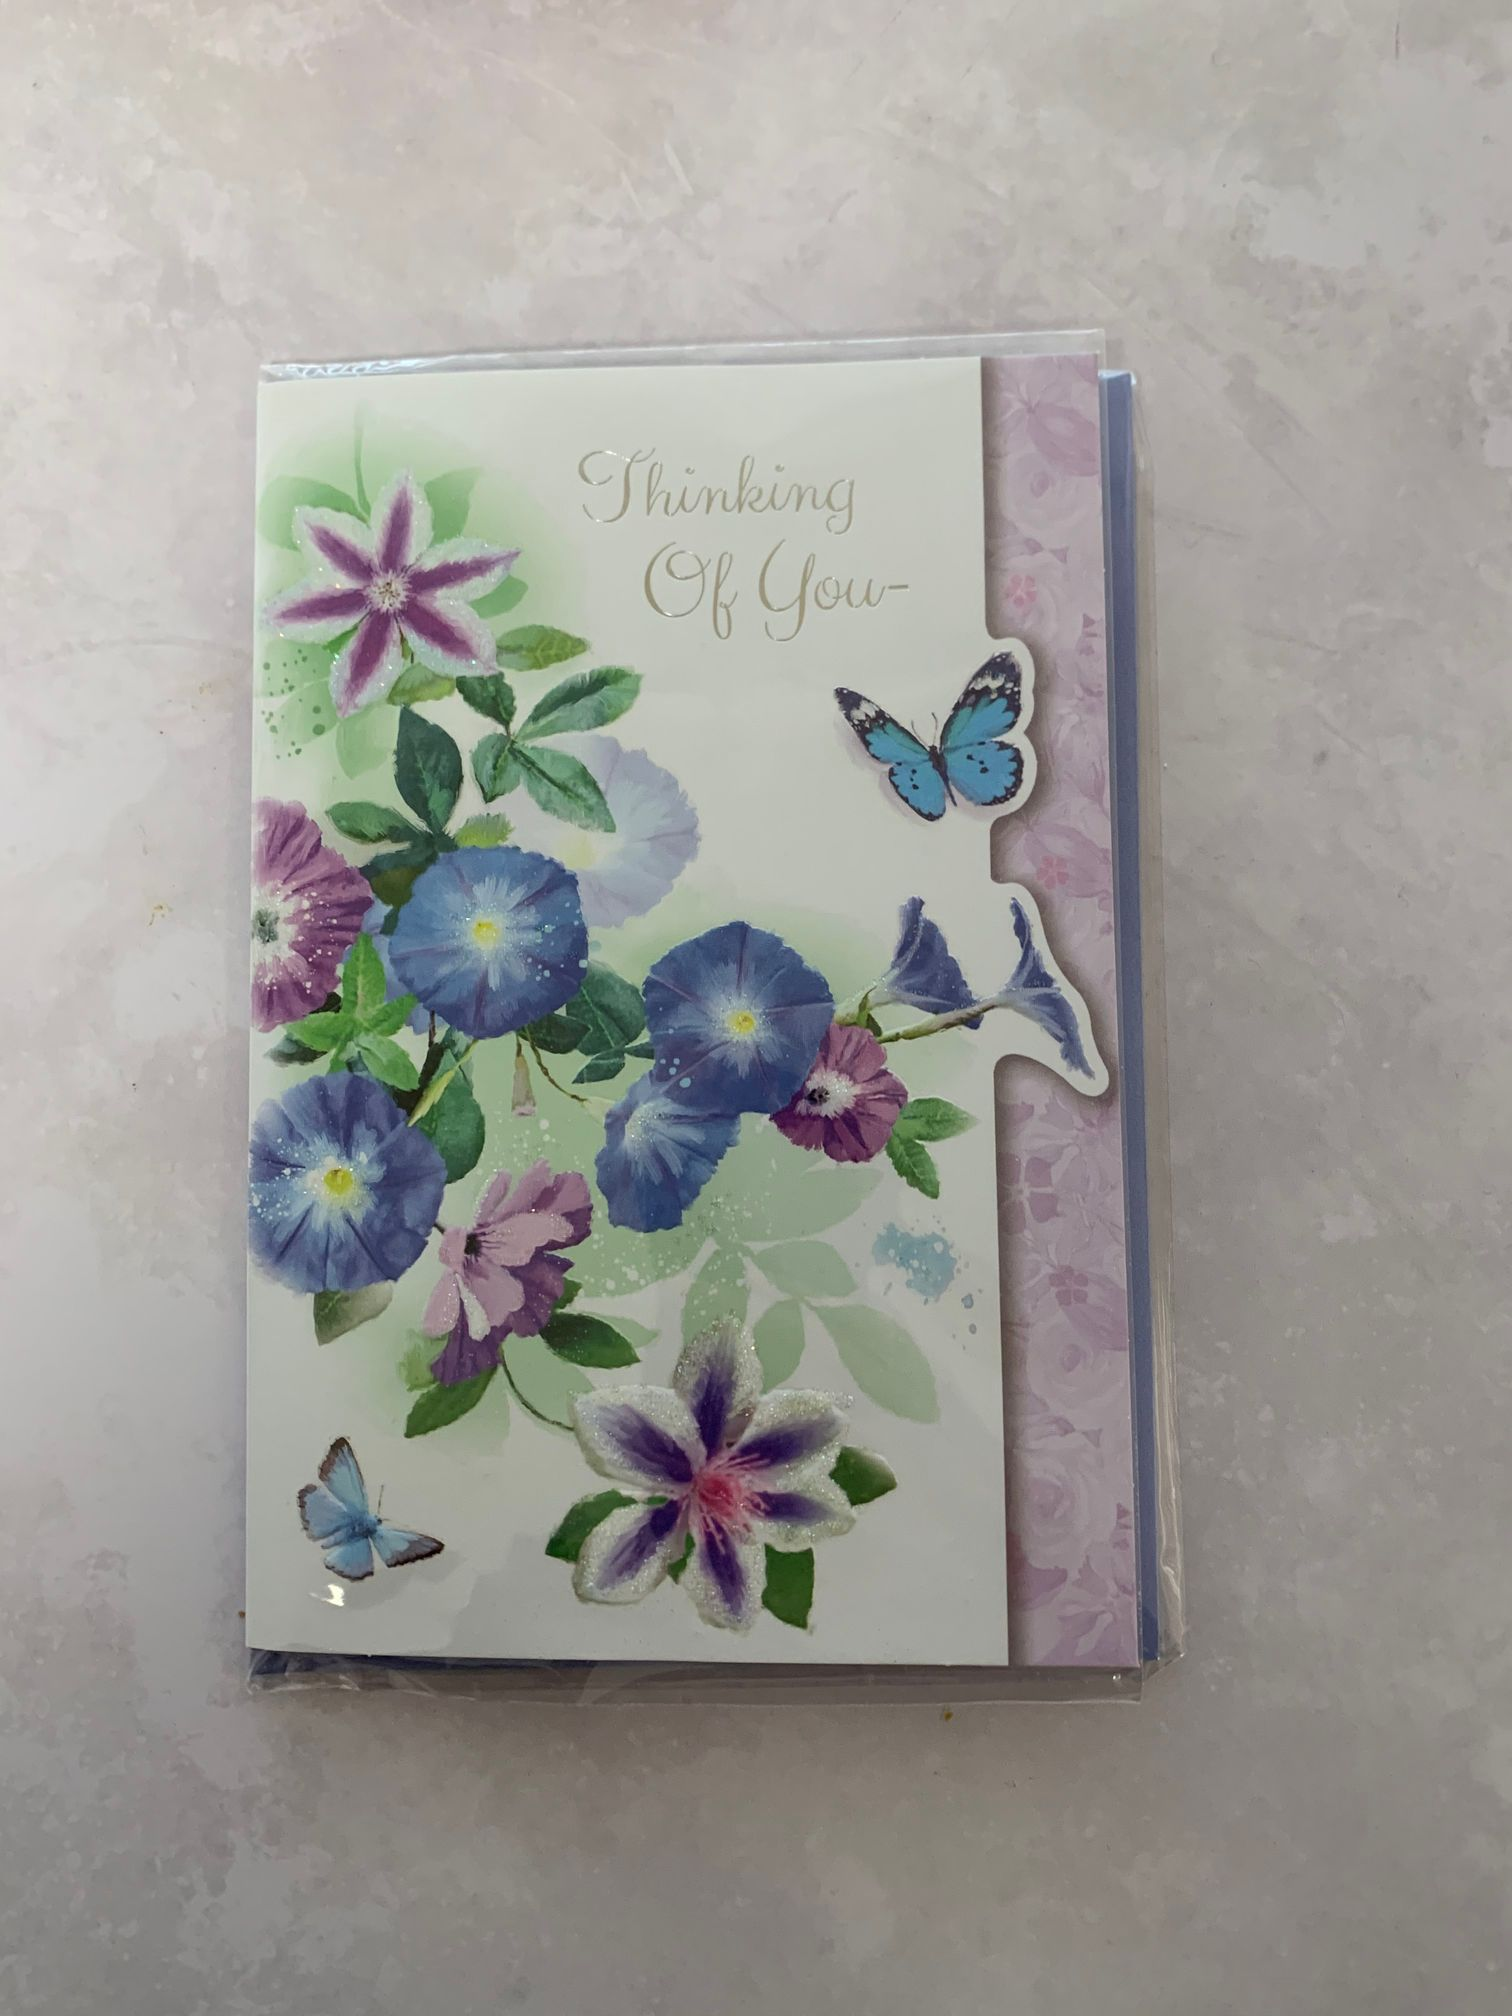 Add a Thinking of you card to your purchase